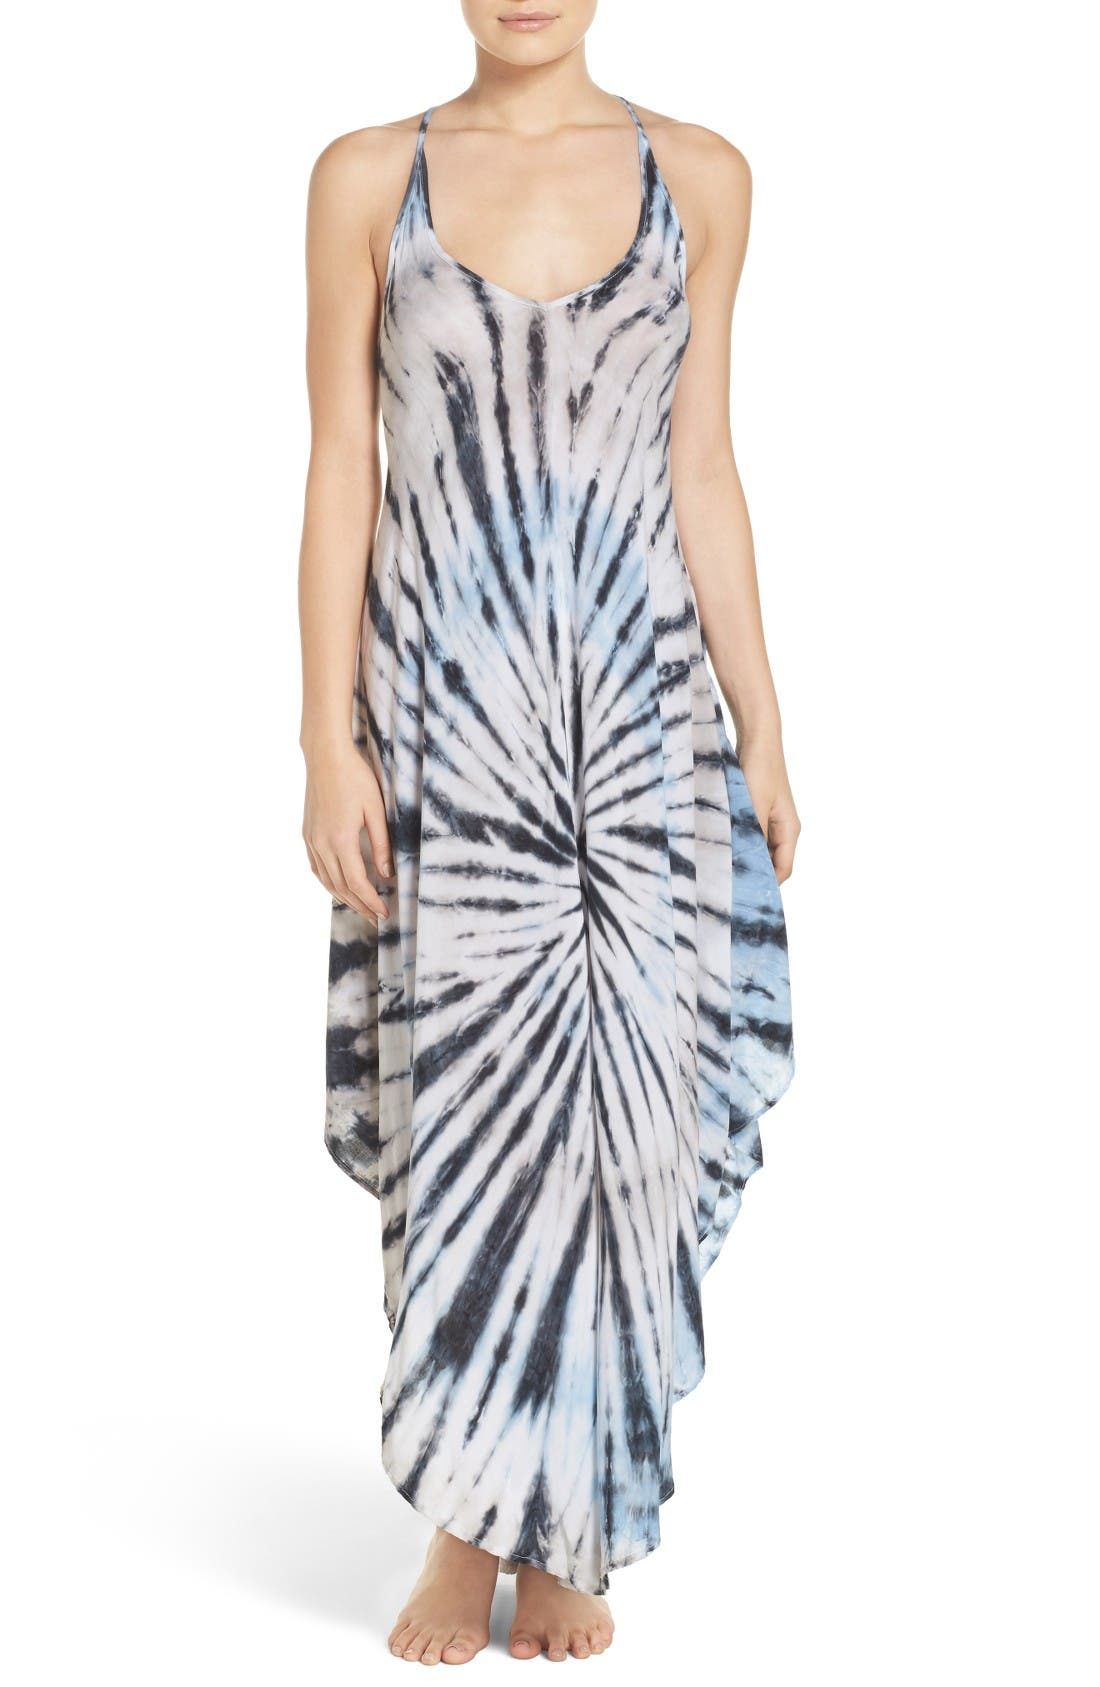 Surf Gypsy Tie Dye Cover-Up Dress